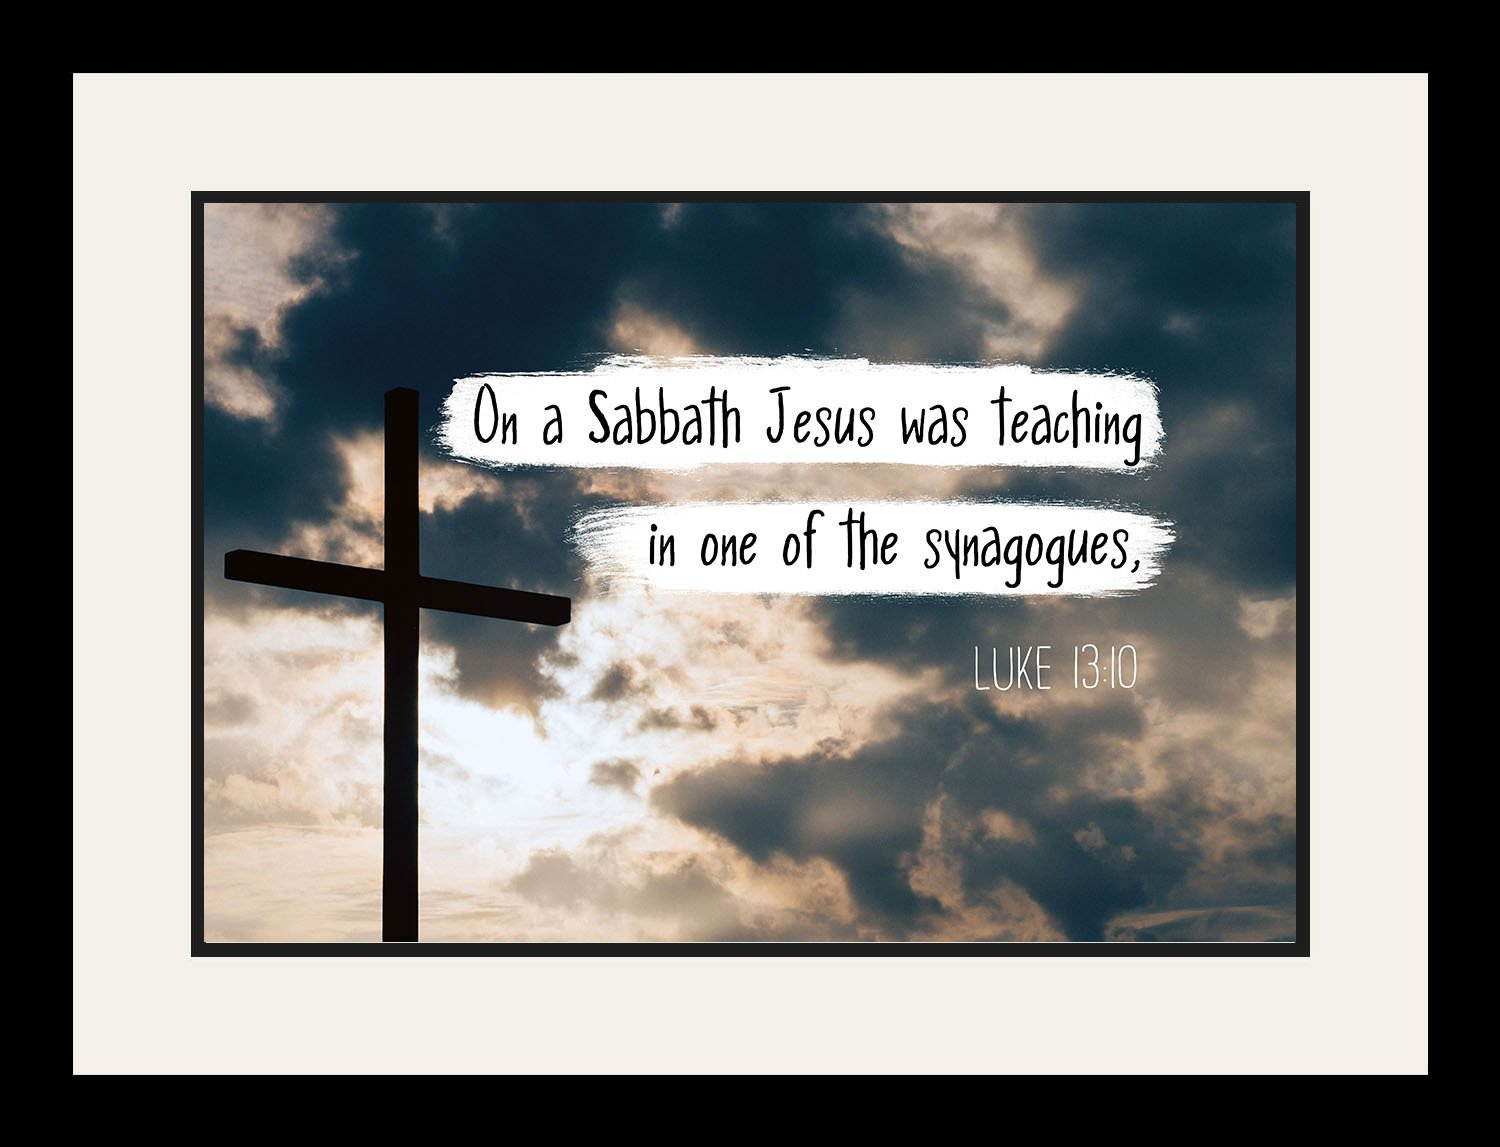 Luke 13:10 Jesus was teaching - Christian Poster, Print, Picture or Framed Wall Art Decor - Bible Verse Collection - Religious Gift for Holidays Christmas Baptism (19x25 Framed)